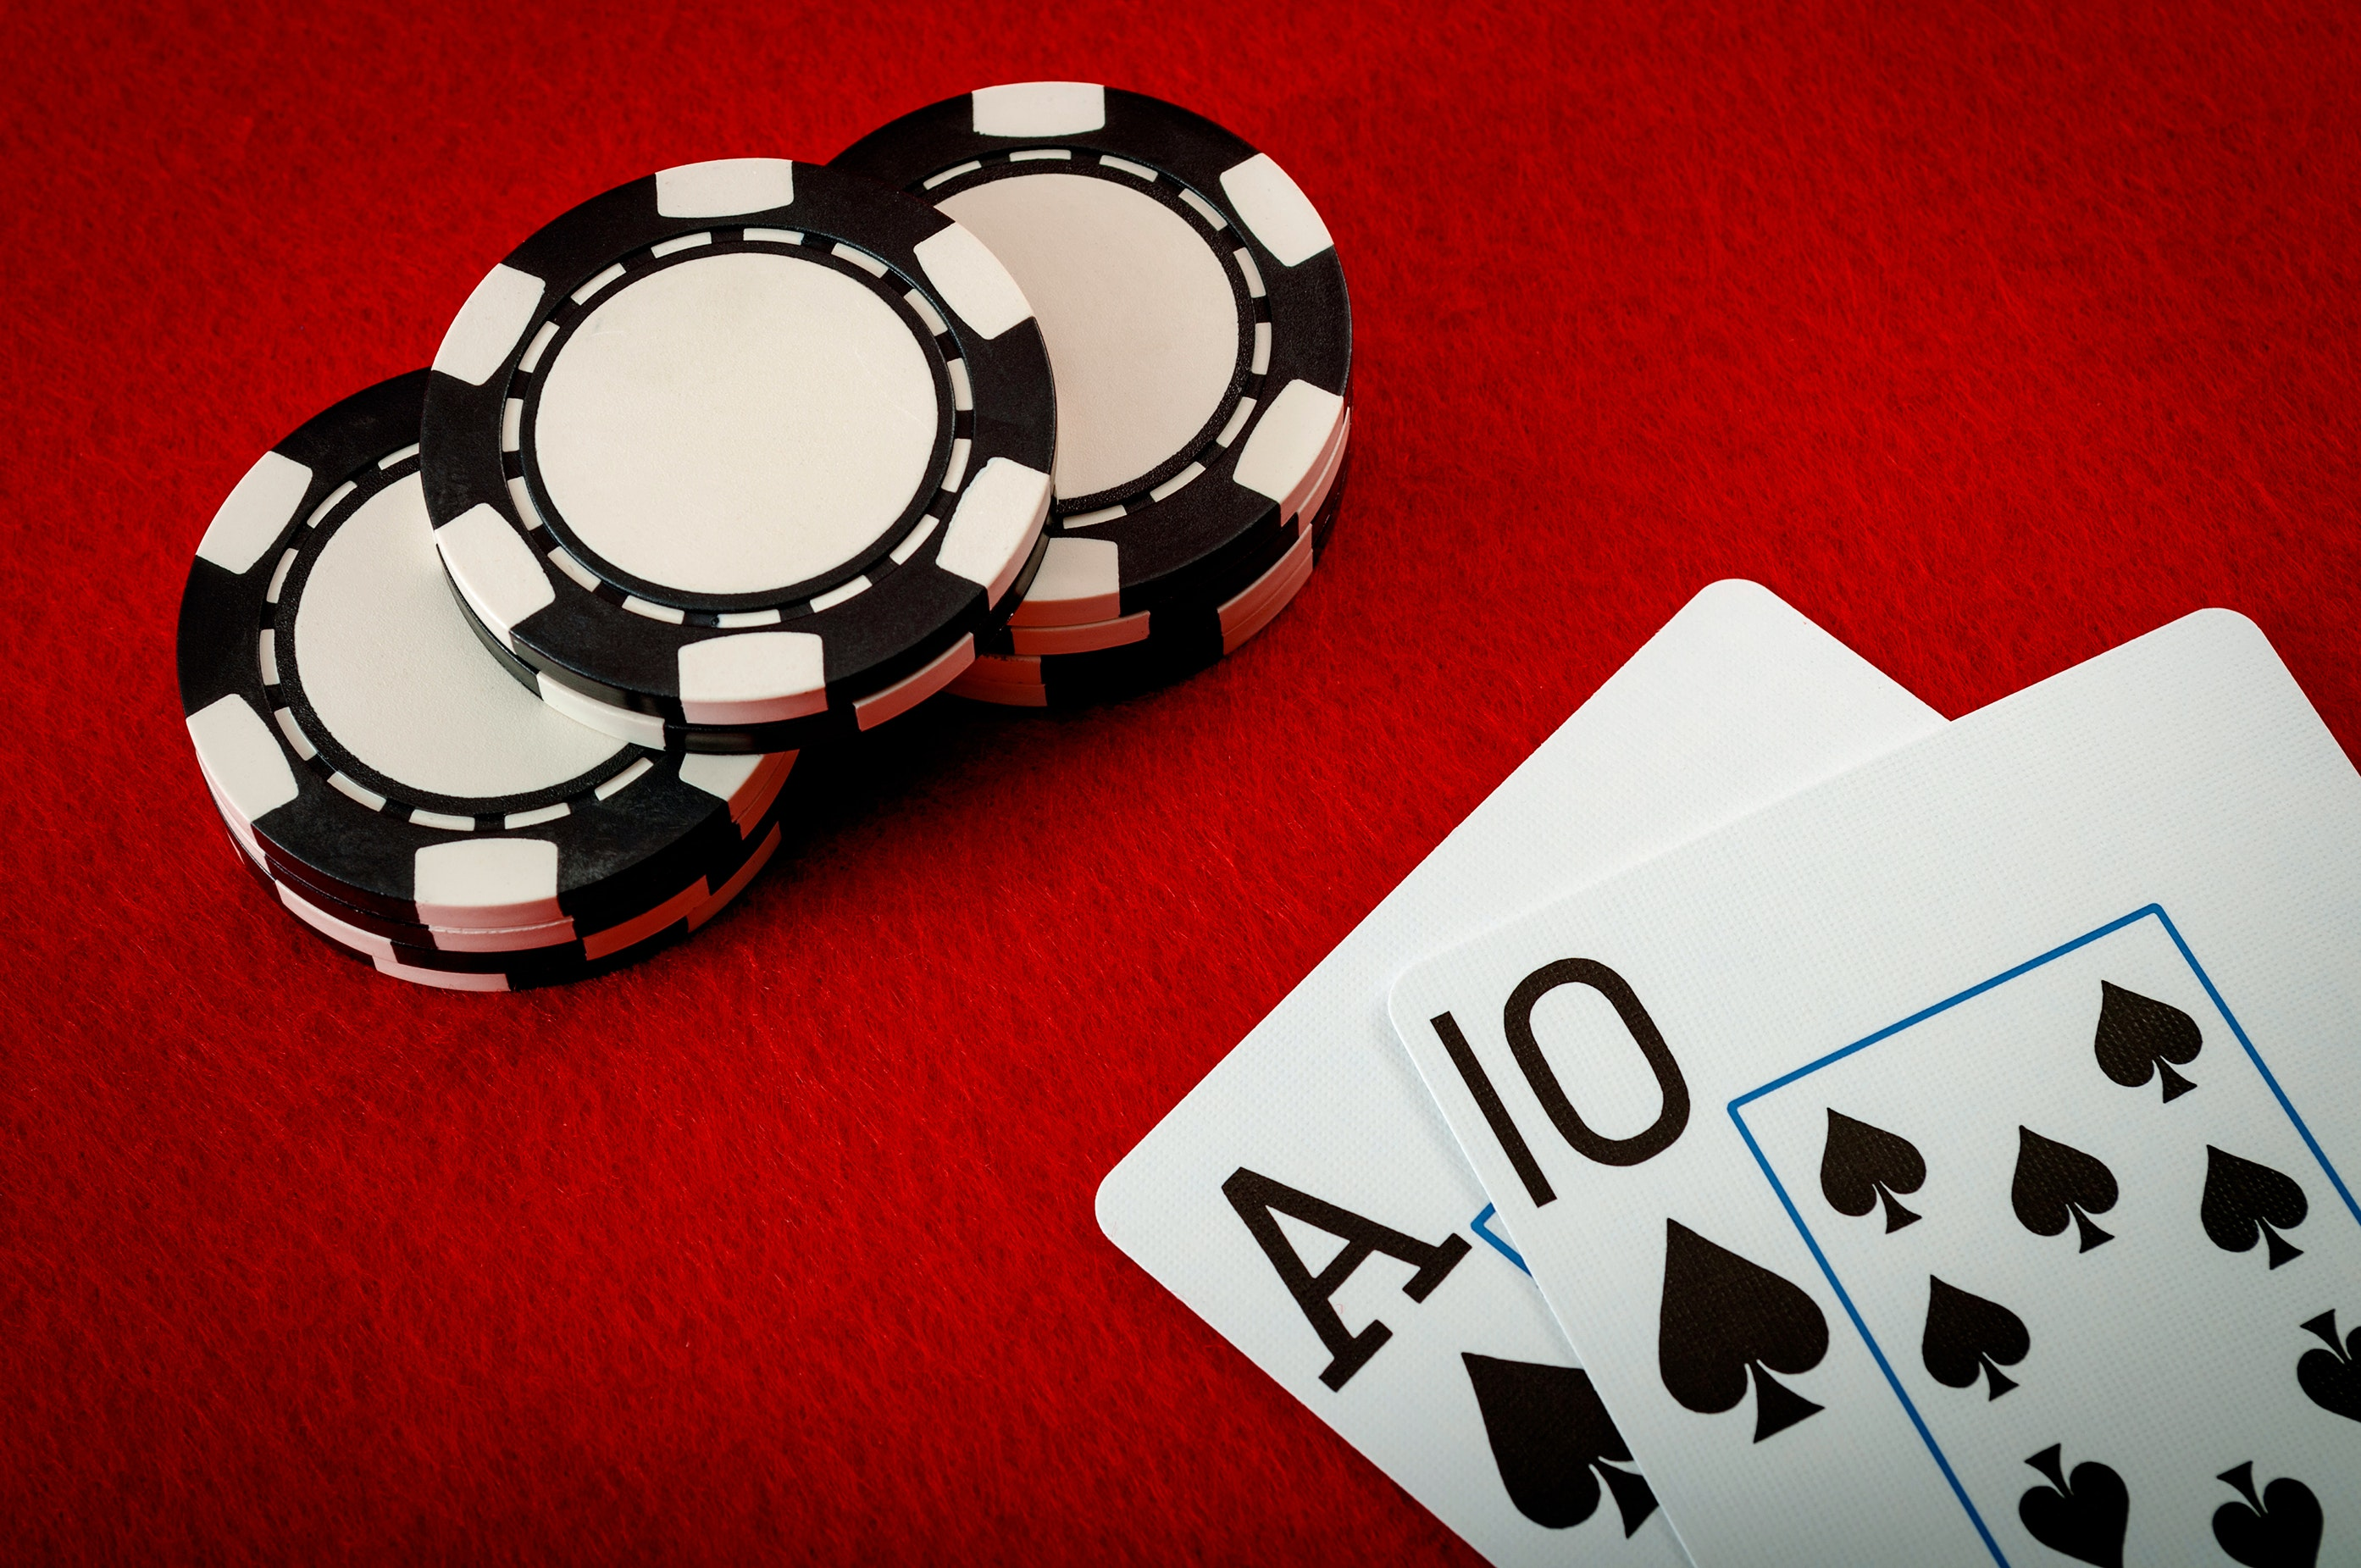 Texas holdem hands ace high or low